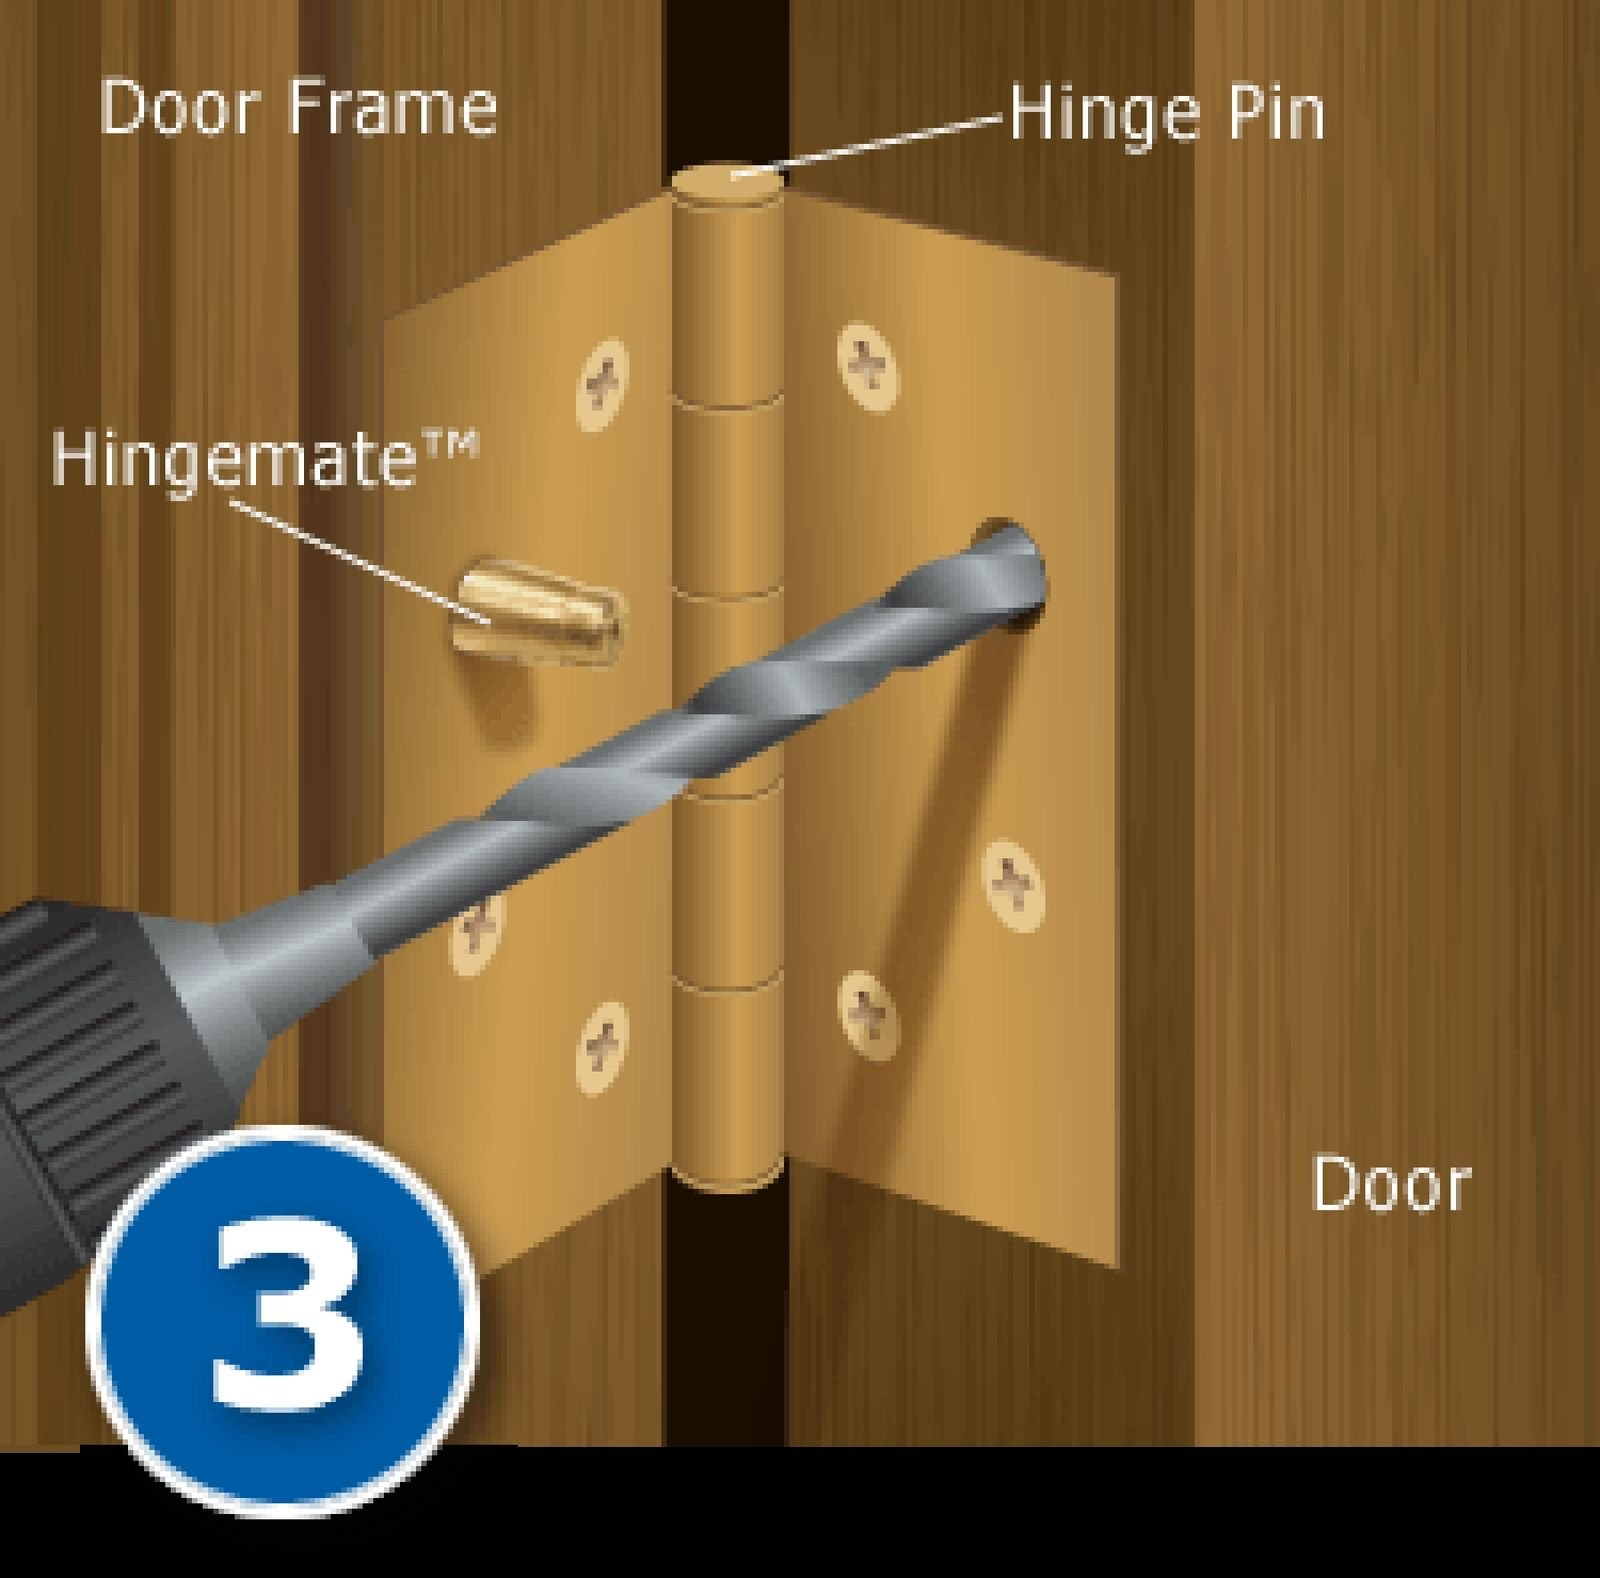 HINGEMATE™ DOOR SECURITY PINS, 3 PACK KIT